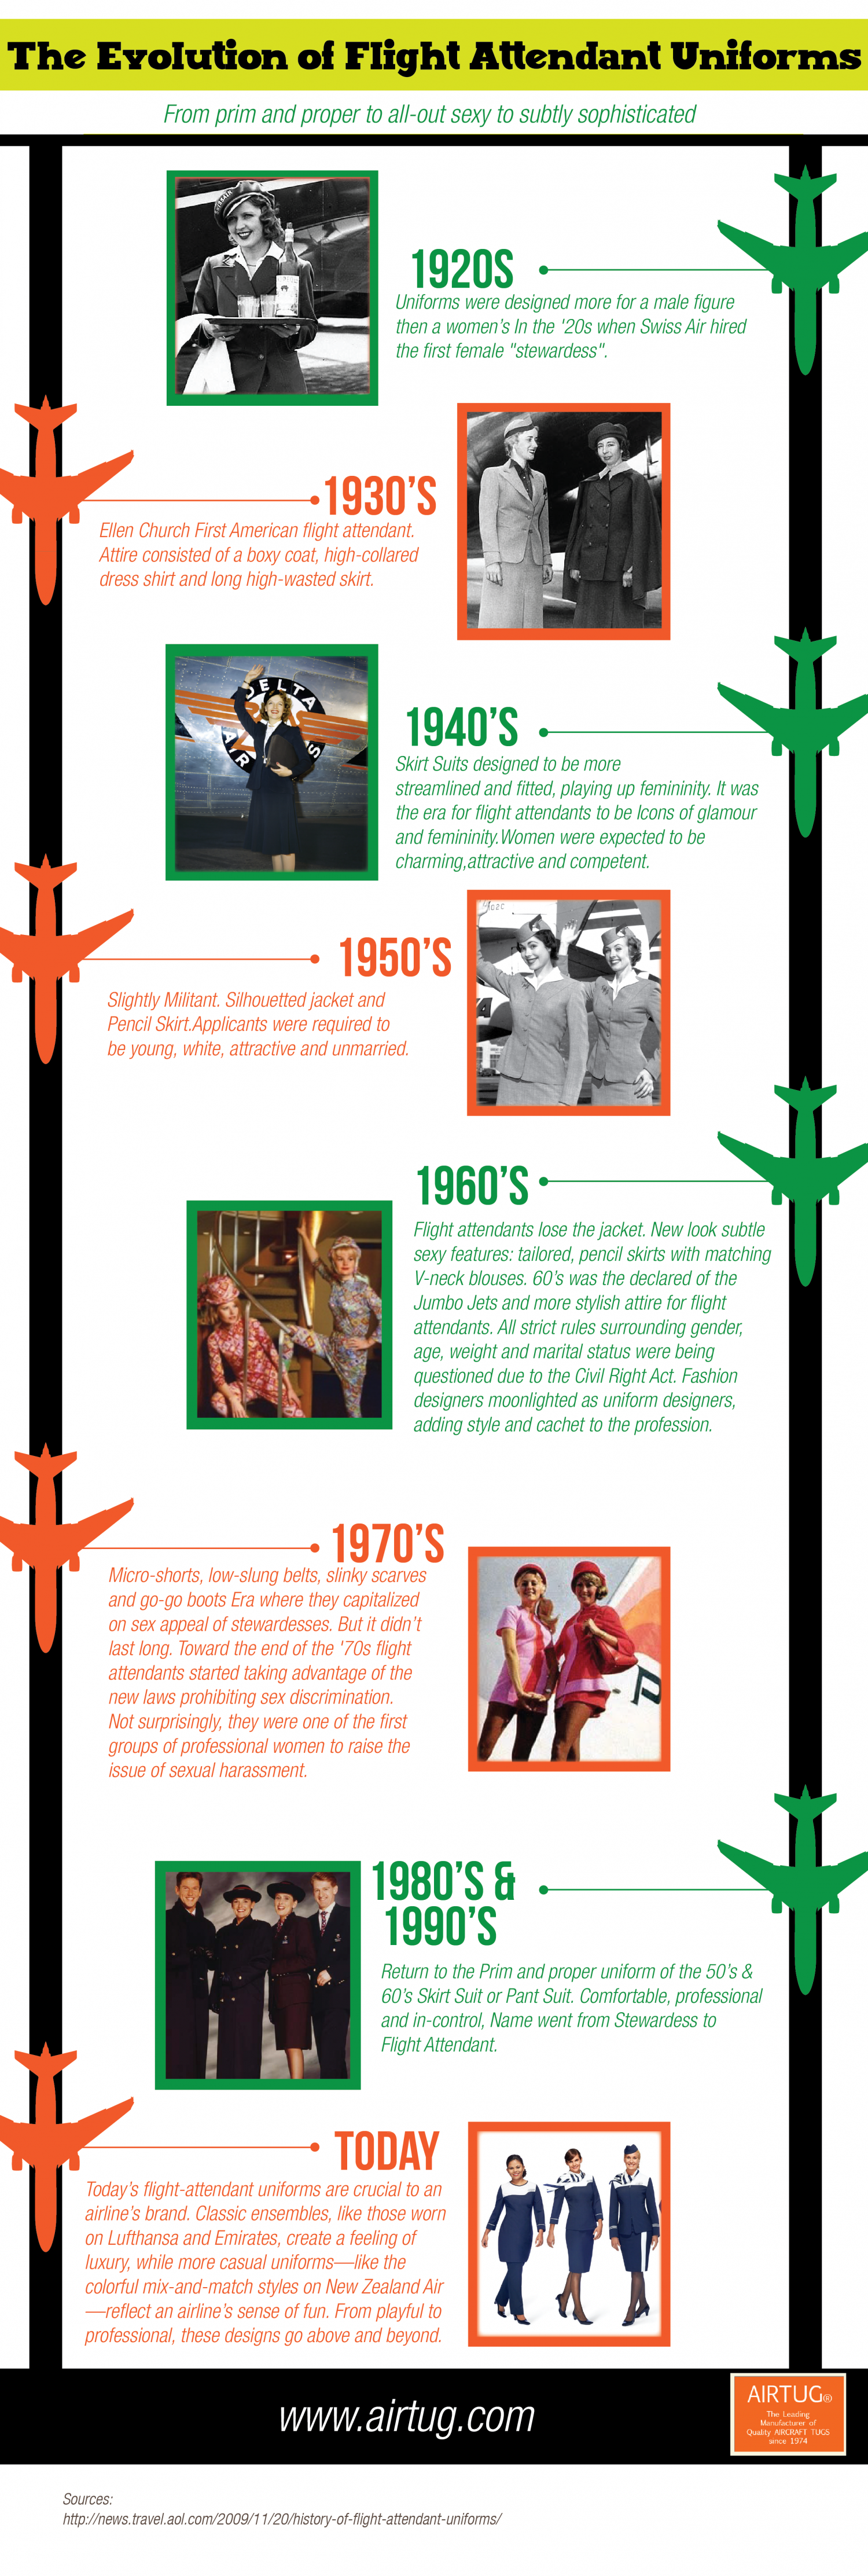 The Evolution of Flight Attendant Uniforms Infographic